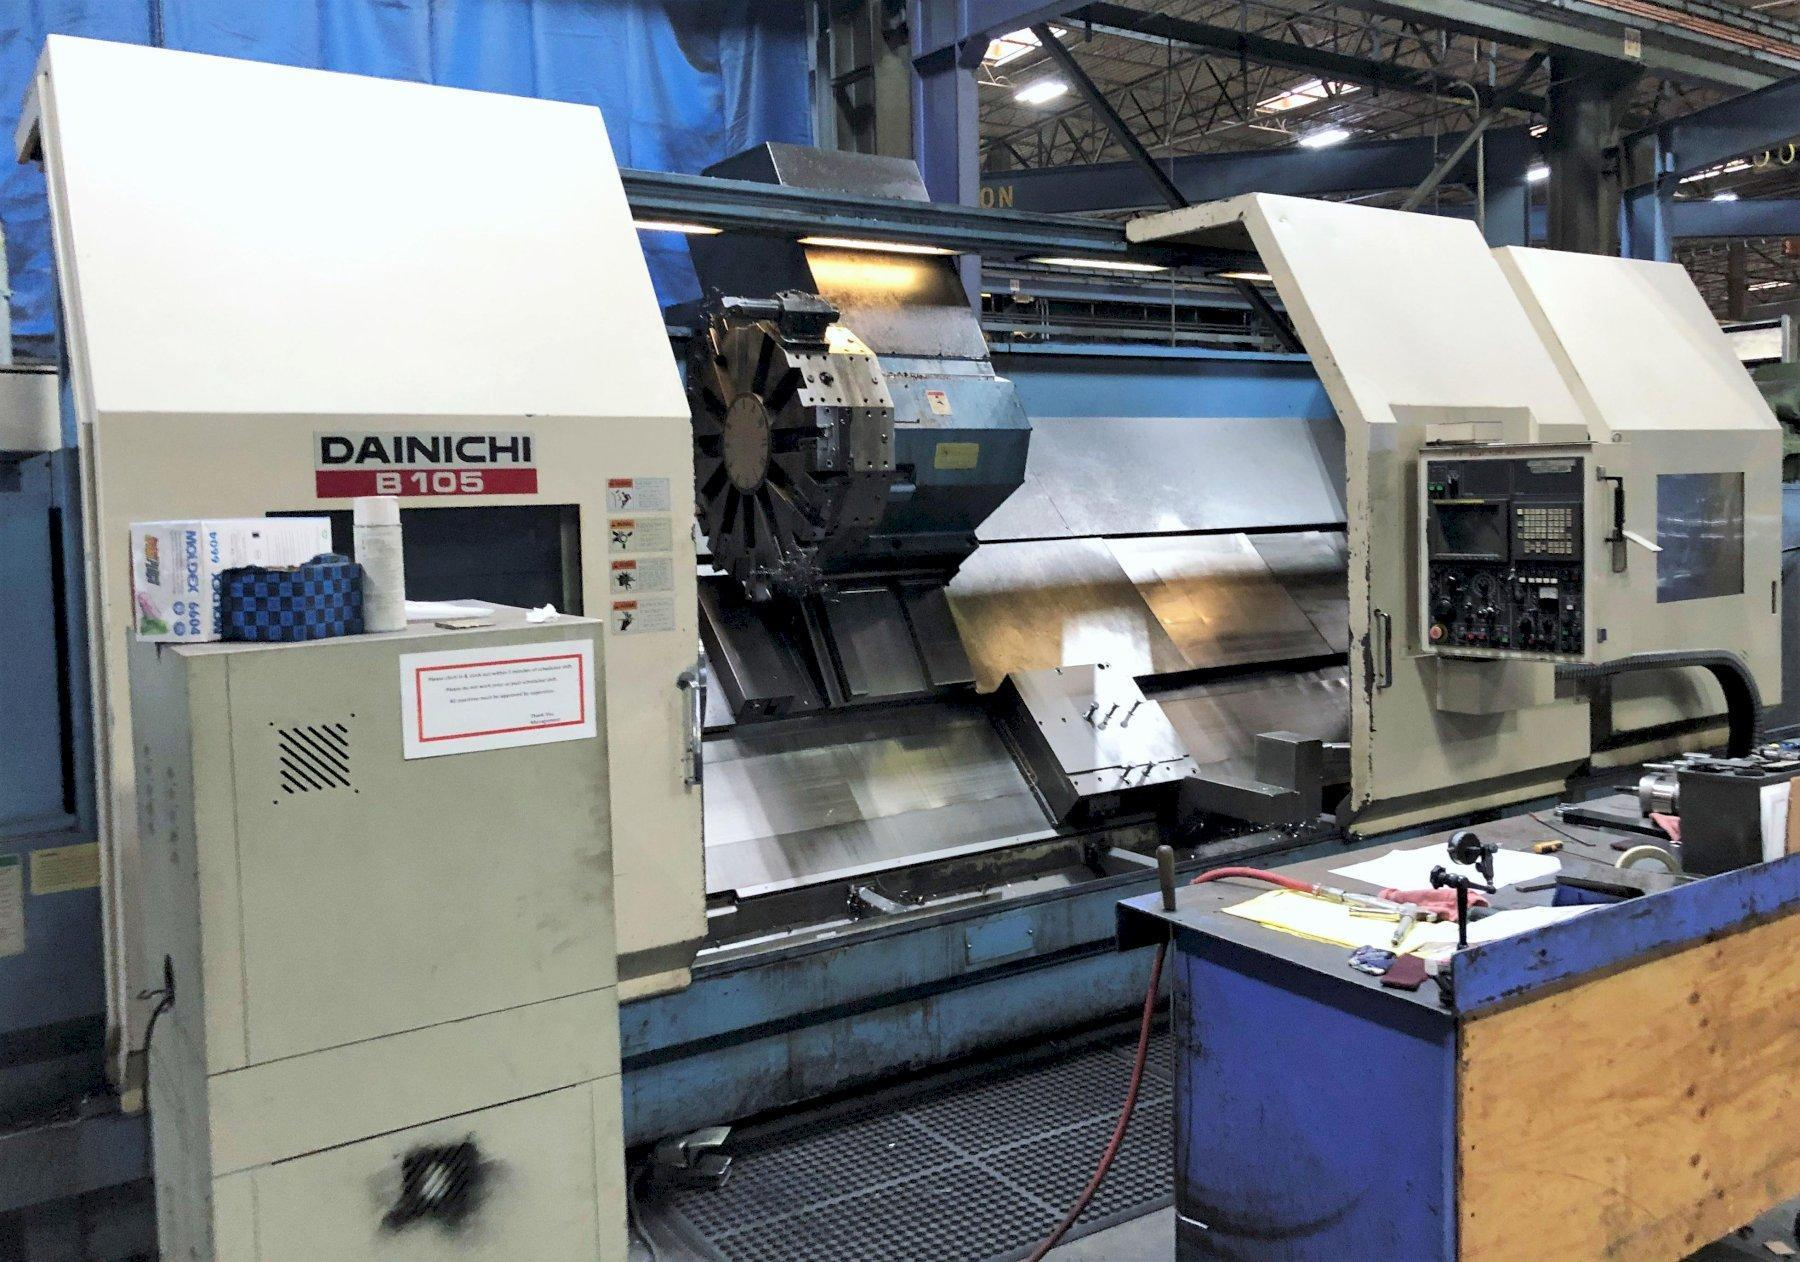 Dainichi BX-105/4000 Hollow Spindle Heavy Duty CNC Lathe